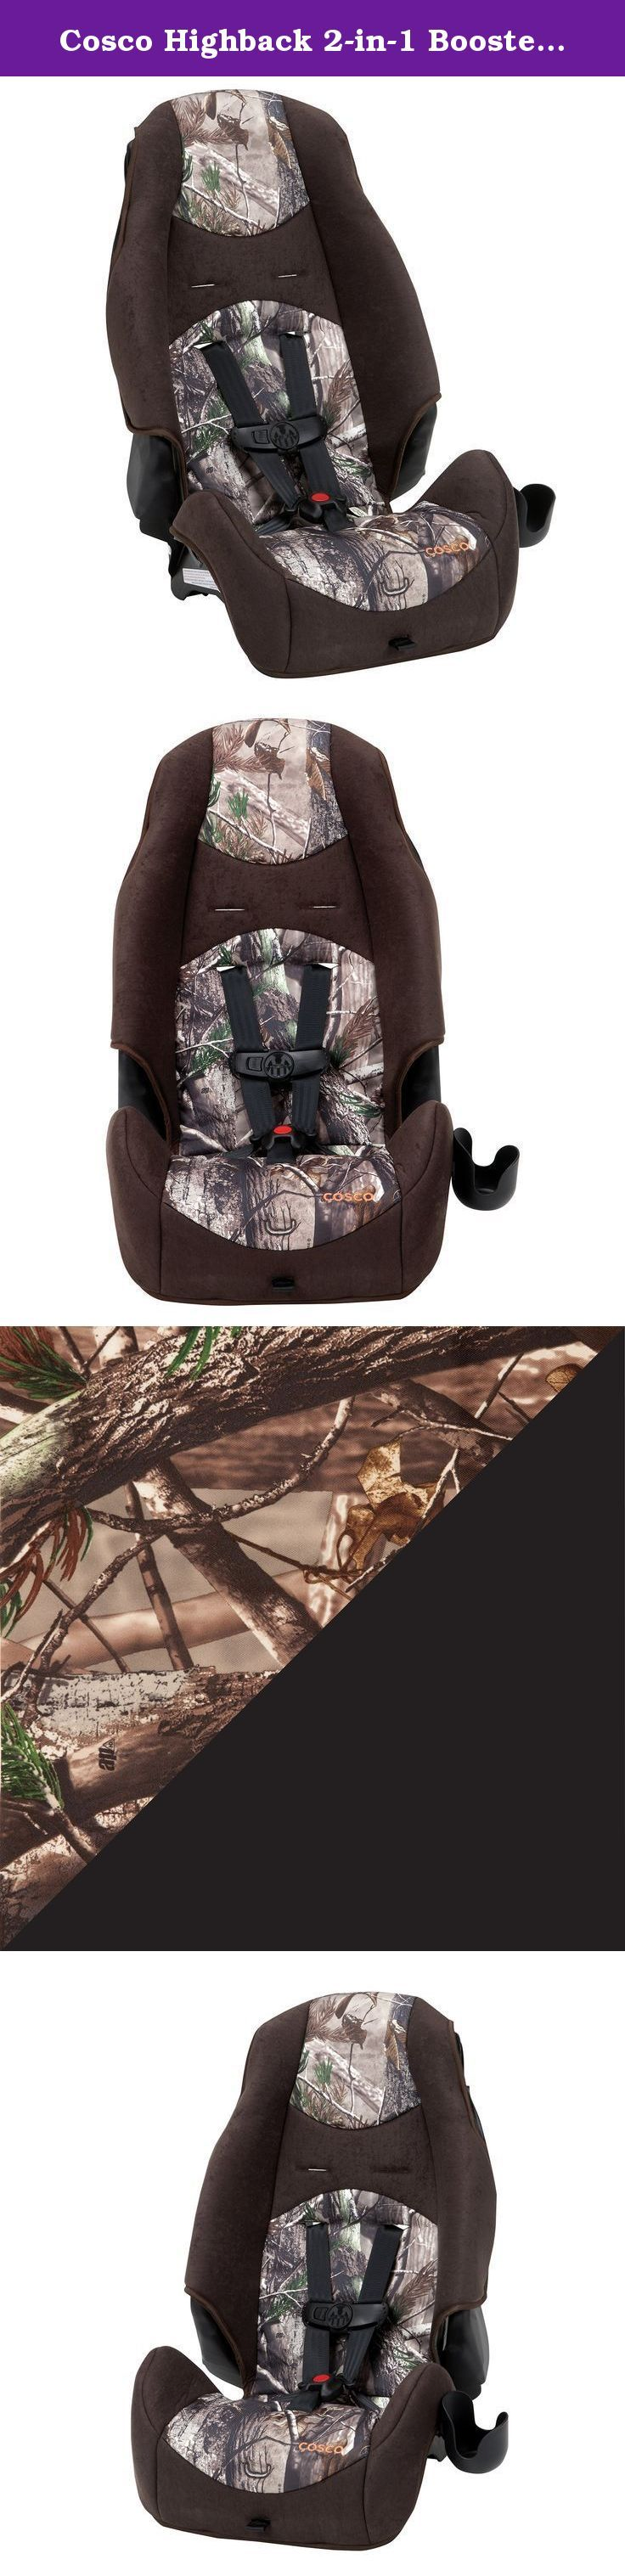 Cosco Highback 2-in-1 Booster Car Seat, Realtree. Get a car seat that lasts. 2 car seats in 1, the Cosco High back 2-in-1 Booster Car Seat takes your child through two different stages for extended value. Use the 5-point harness for smaller kids and then convert to a belt-positioning booster for bigger kids. The High back 2 in 1 is LATCH equipped when you use the five-point harness and adjusts from the front, making it easier to get a snug fit. When your child gets bigger, remove the…